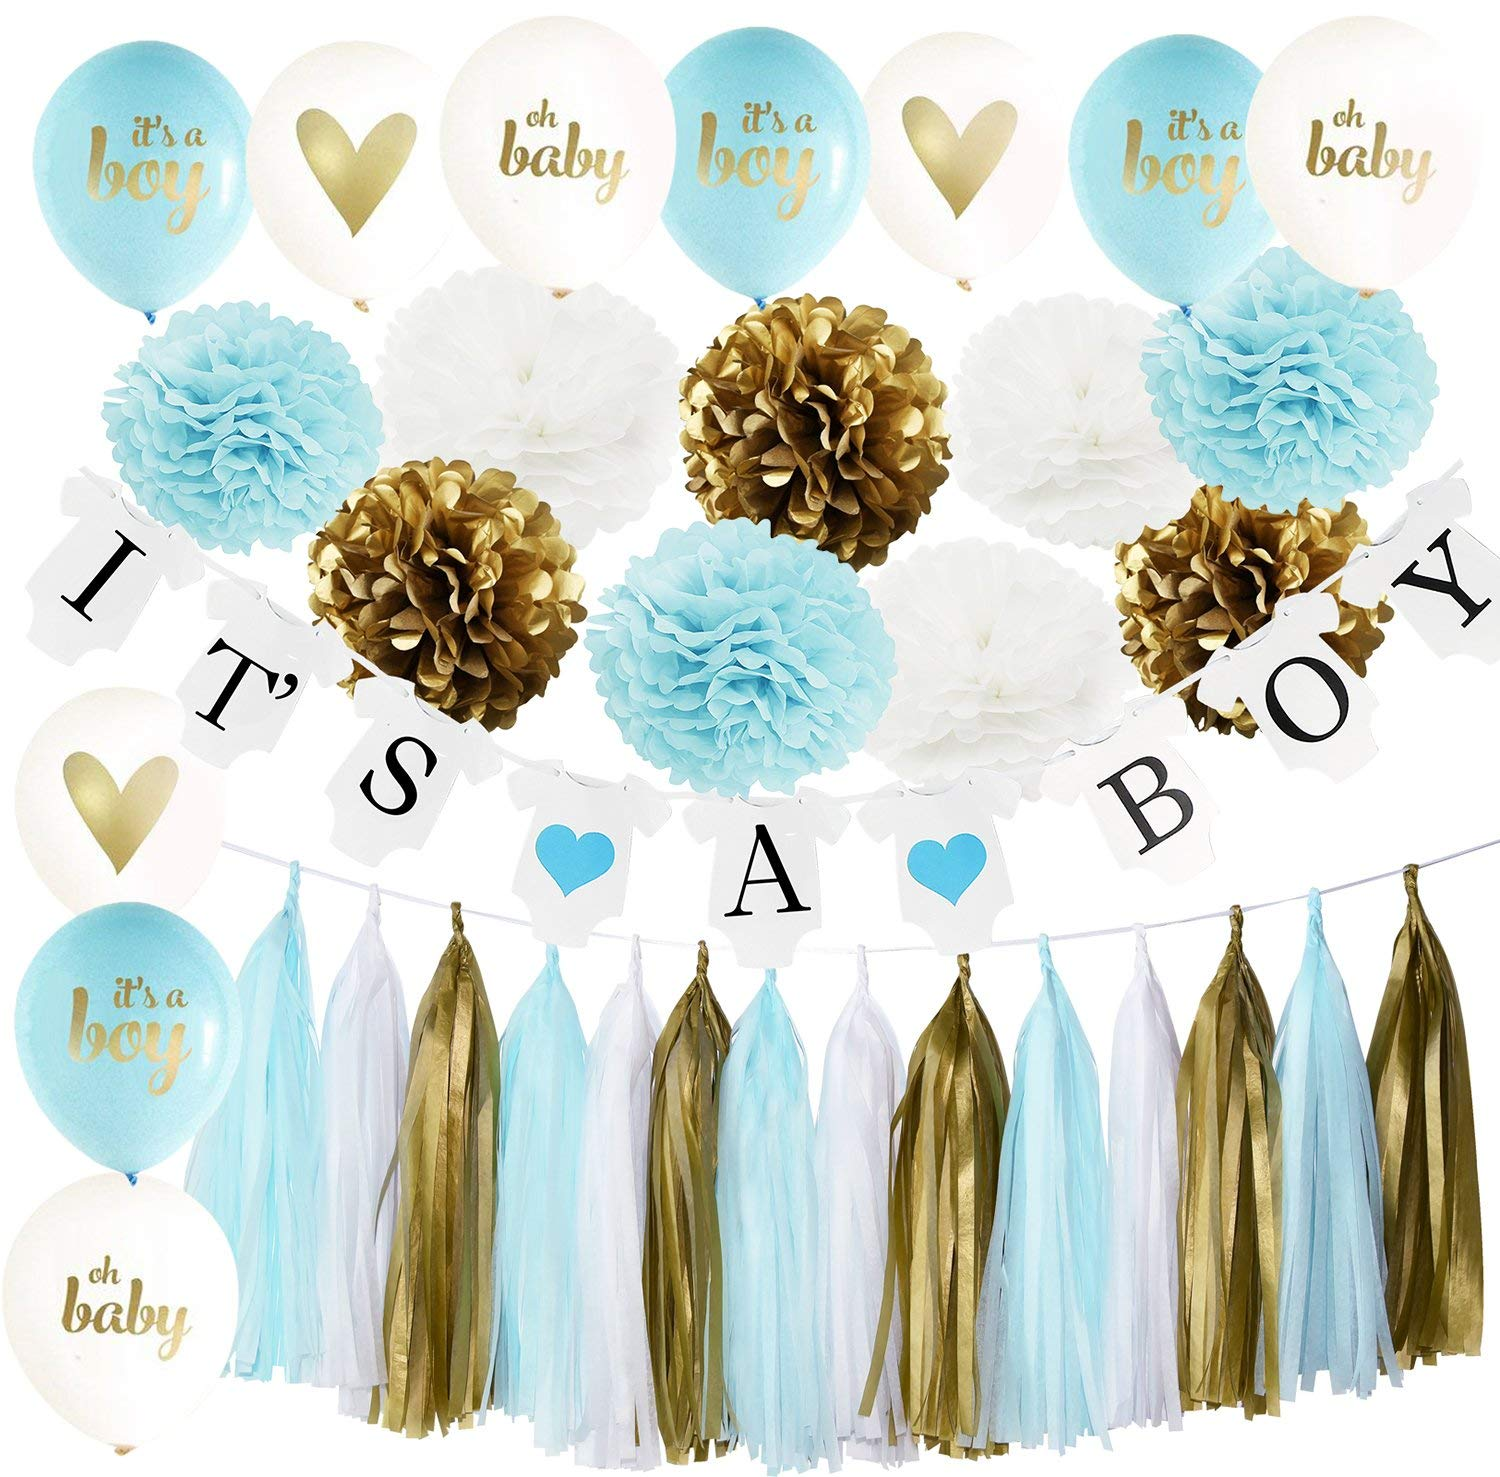 40ps Baby Shower Decorations for Boy White Blue Gold It's a Boy Bunting Banner,Oh Baby Ballons,It's A Boy Ballons with Tissue Paper Pom Poms Tassel Garland for Boy Baby Shower Decorations